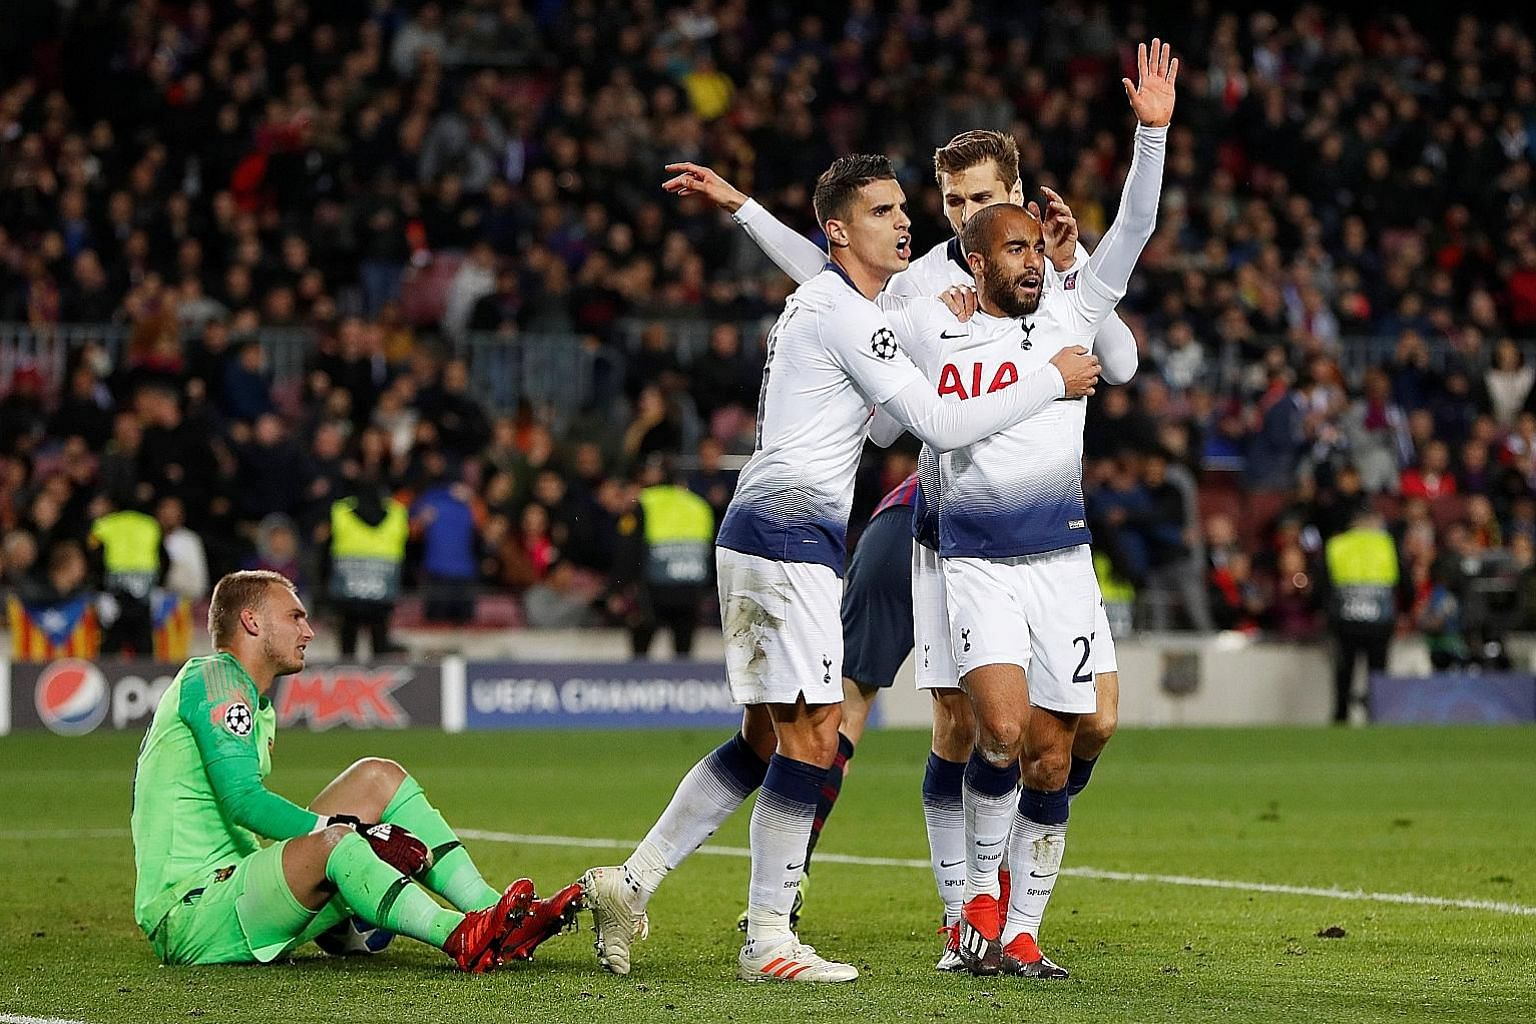 Tottenham's Lucas Moura (front) celebrates with teammates Erik Lamela and Fernando Llorente after scoring the vital equaliser against Barcelona at the Nou Camp on Tuesday. The 1-1 result ensured that Spurs are through to the last 16 of the Champions